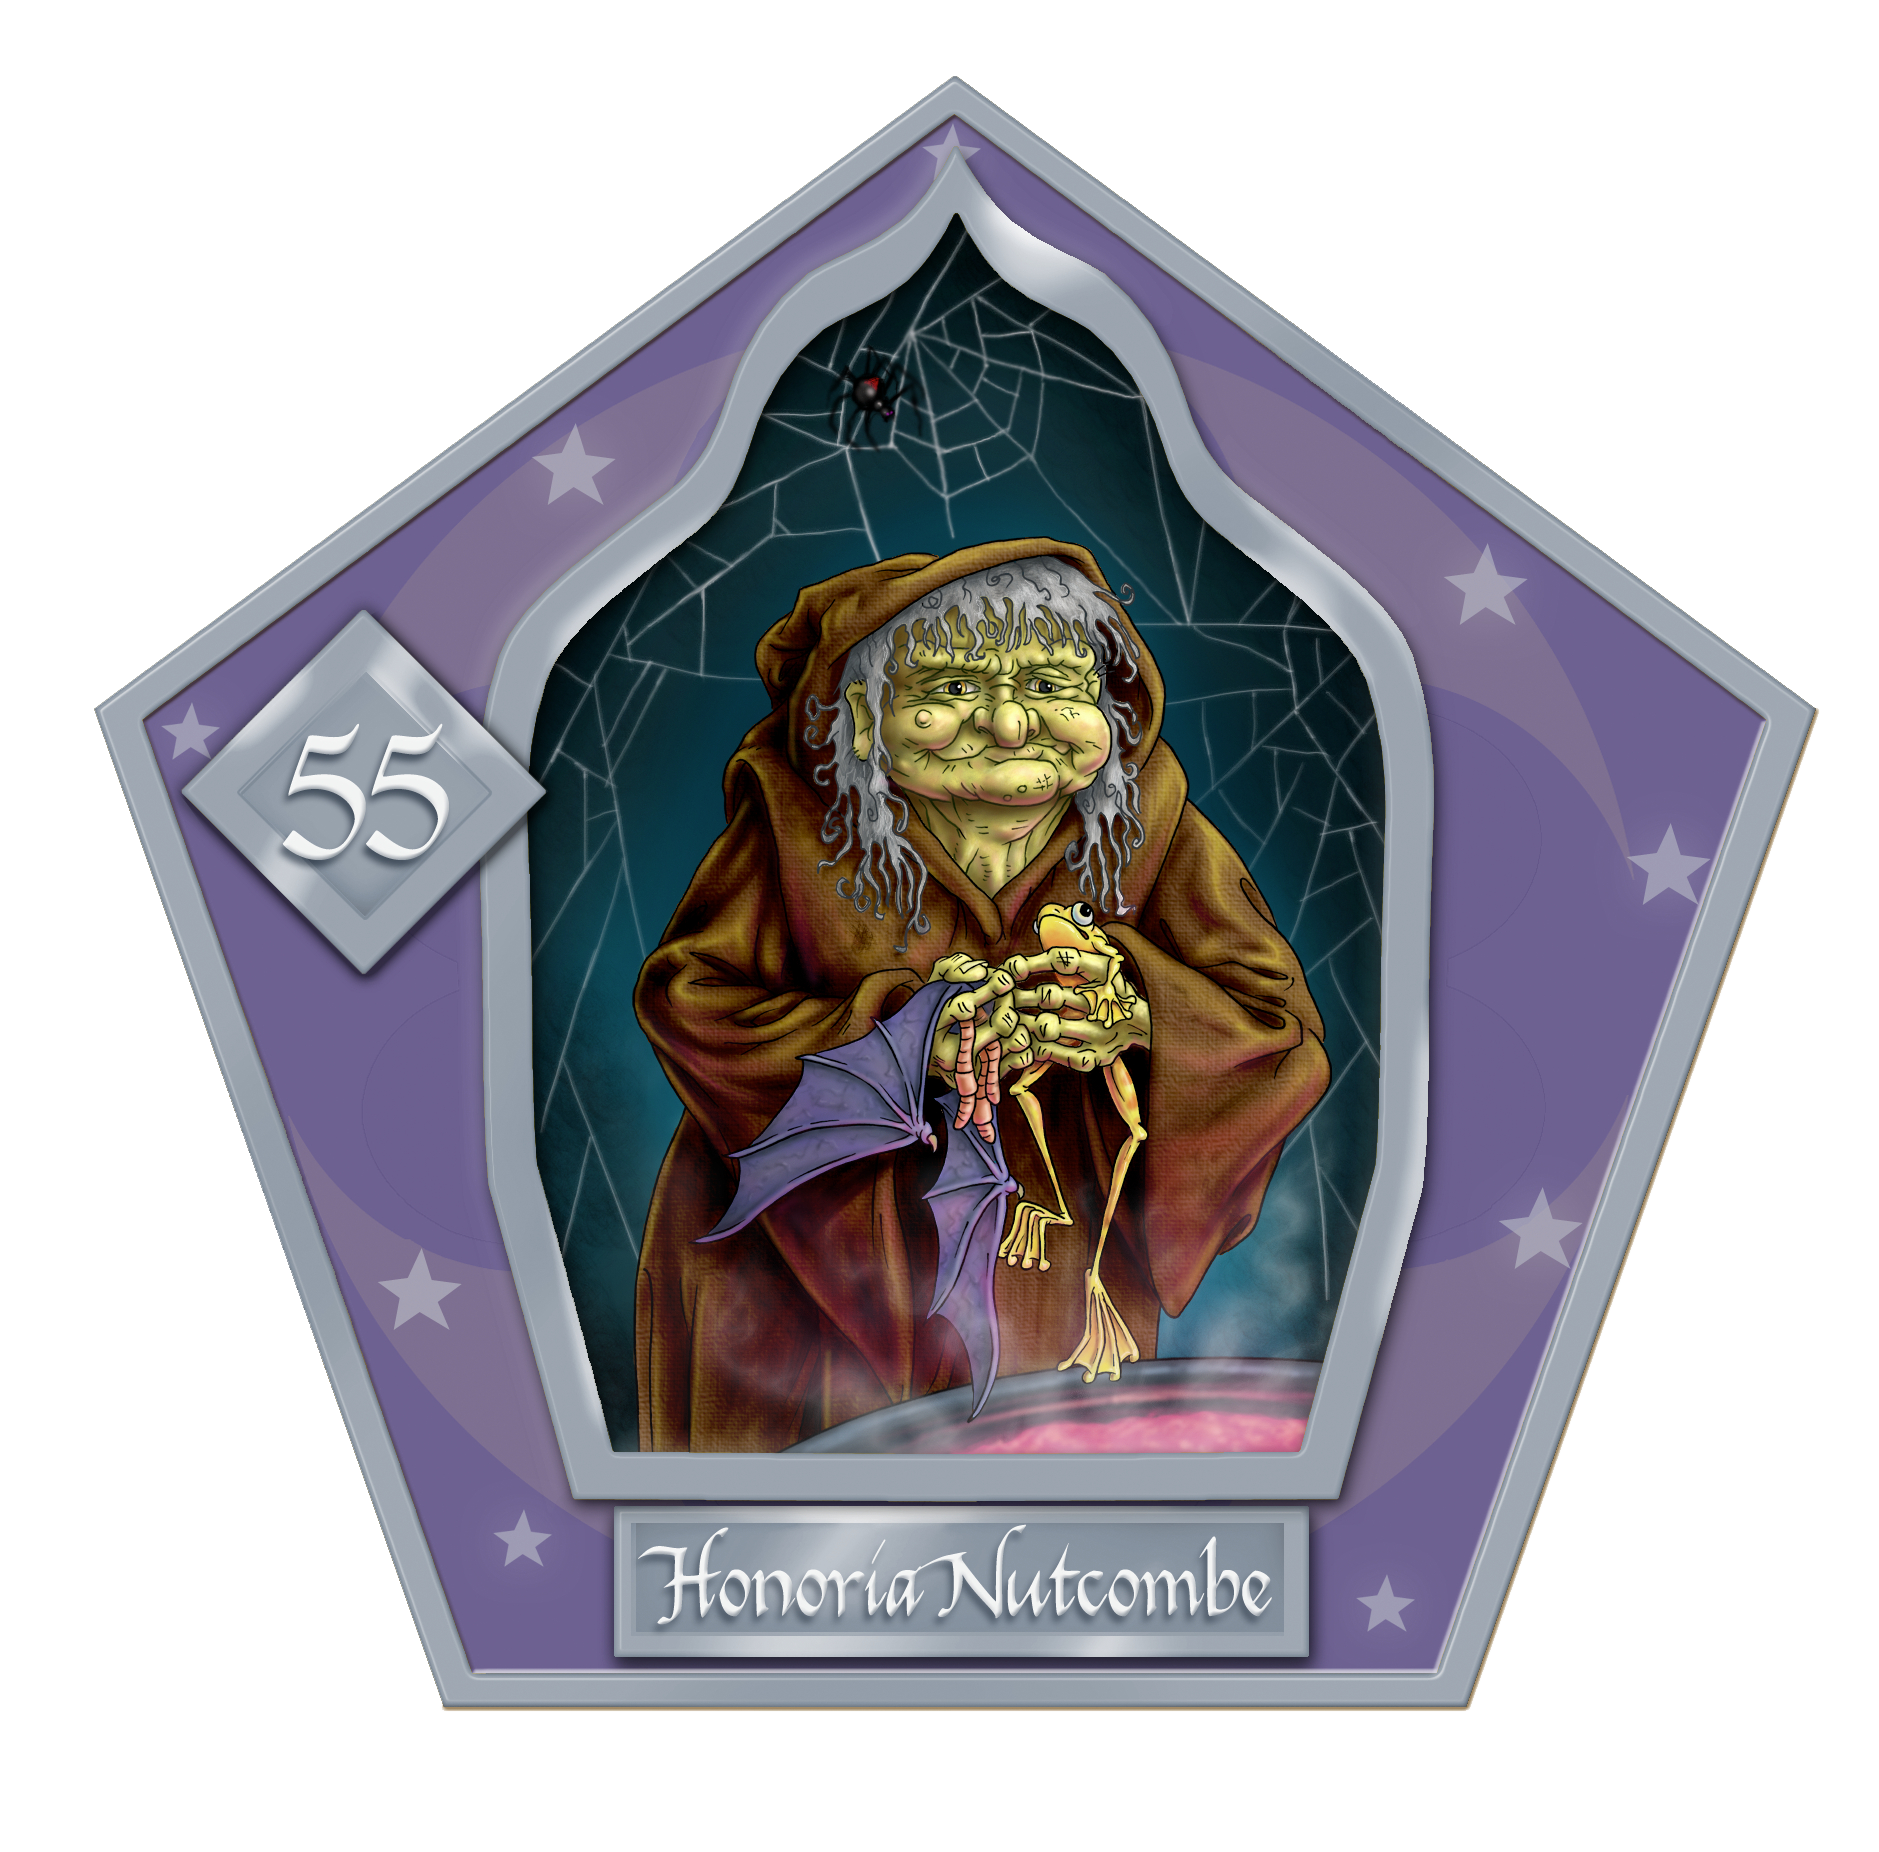 File:Honoria Nutcombe-55-chocFrogCard.png